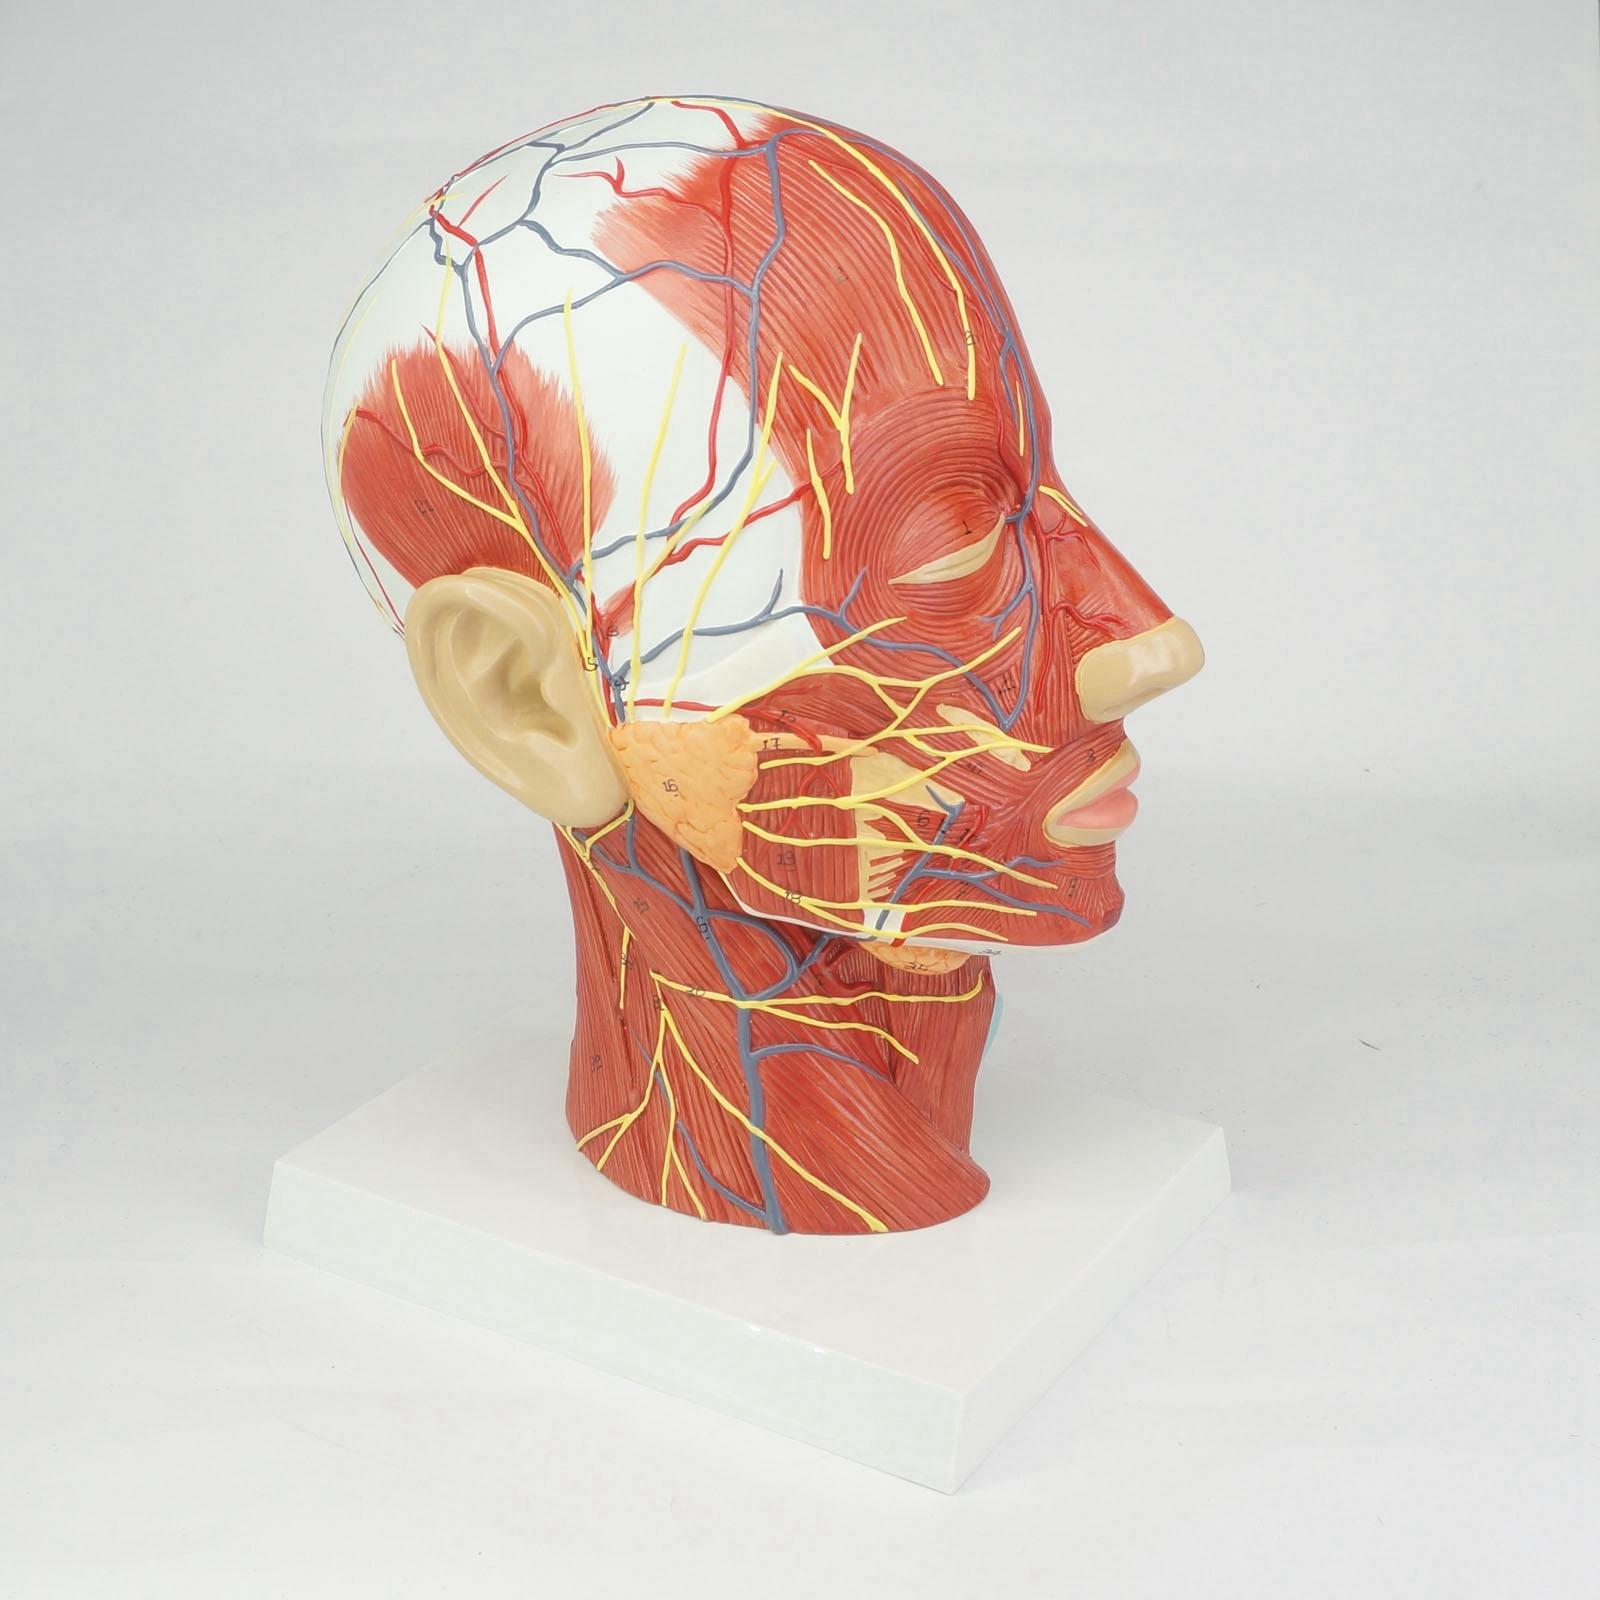 Median Section of Human Head & Neck Anatomical Model Medical Skeleton Anatomy Natural Life Size